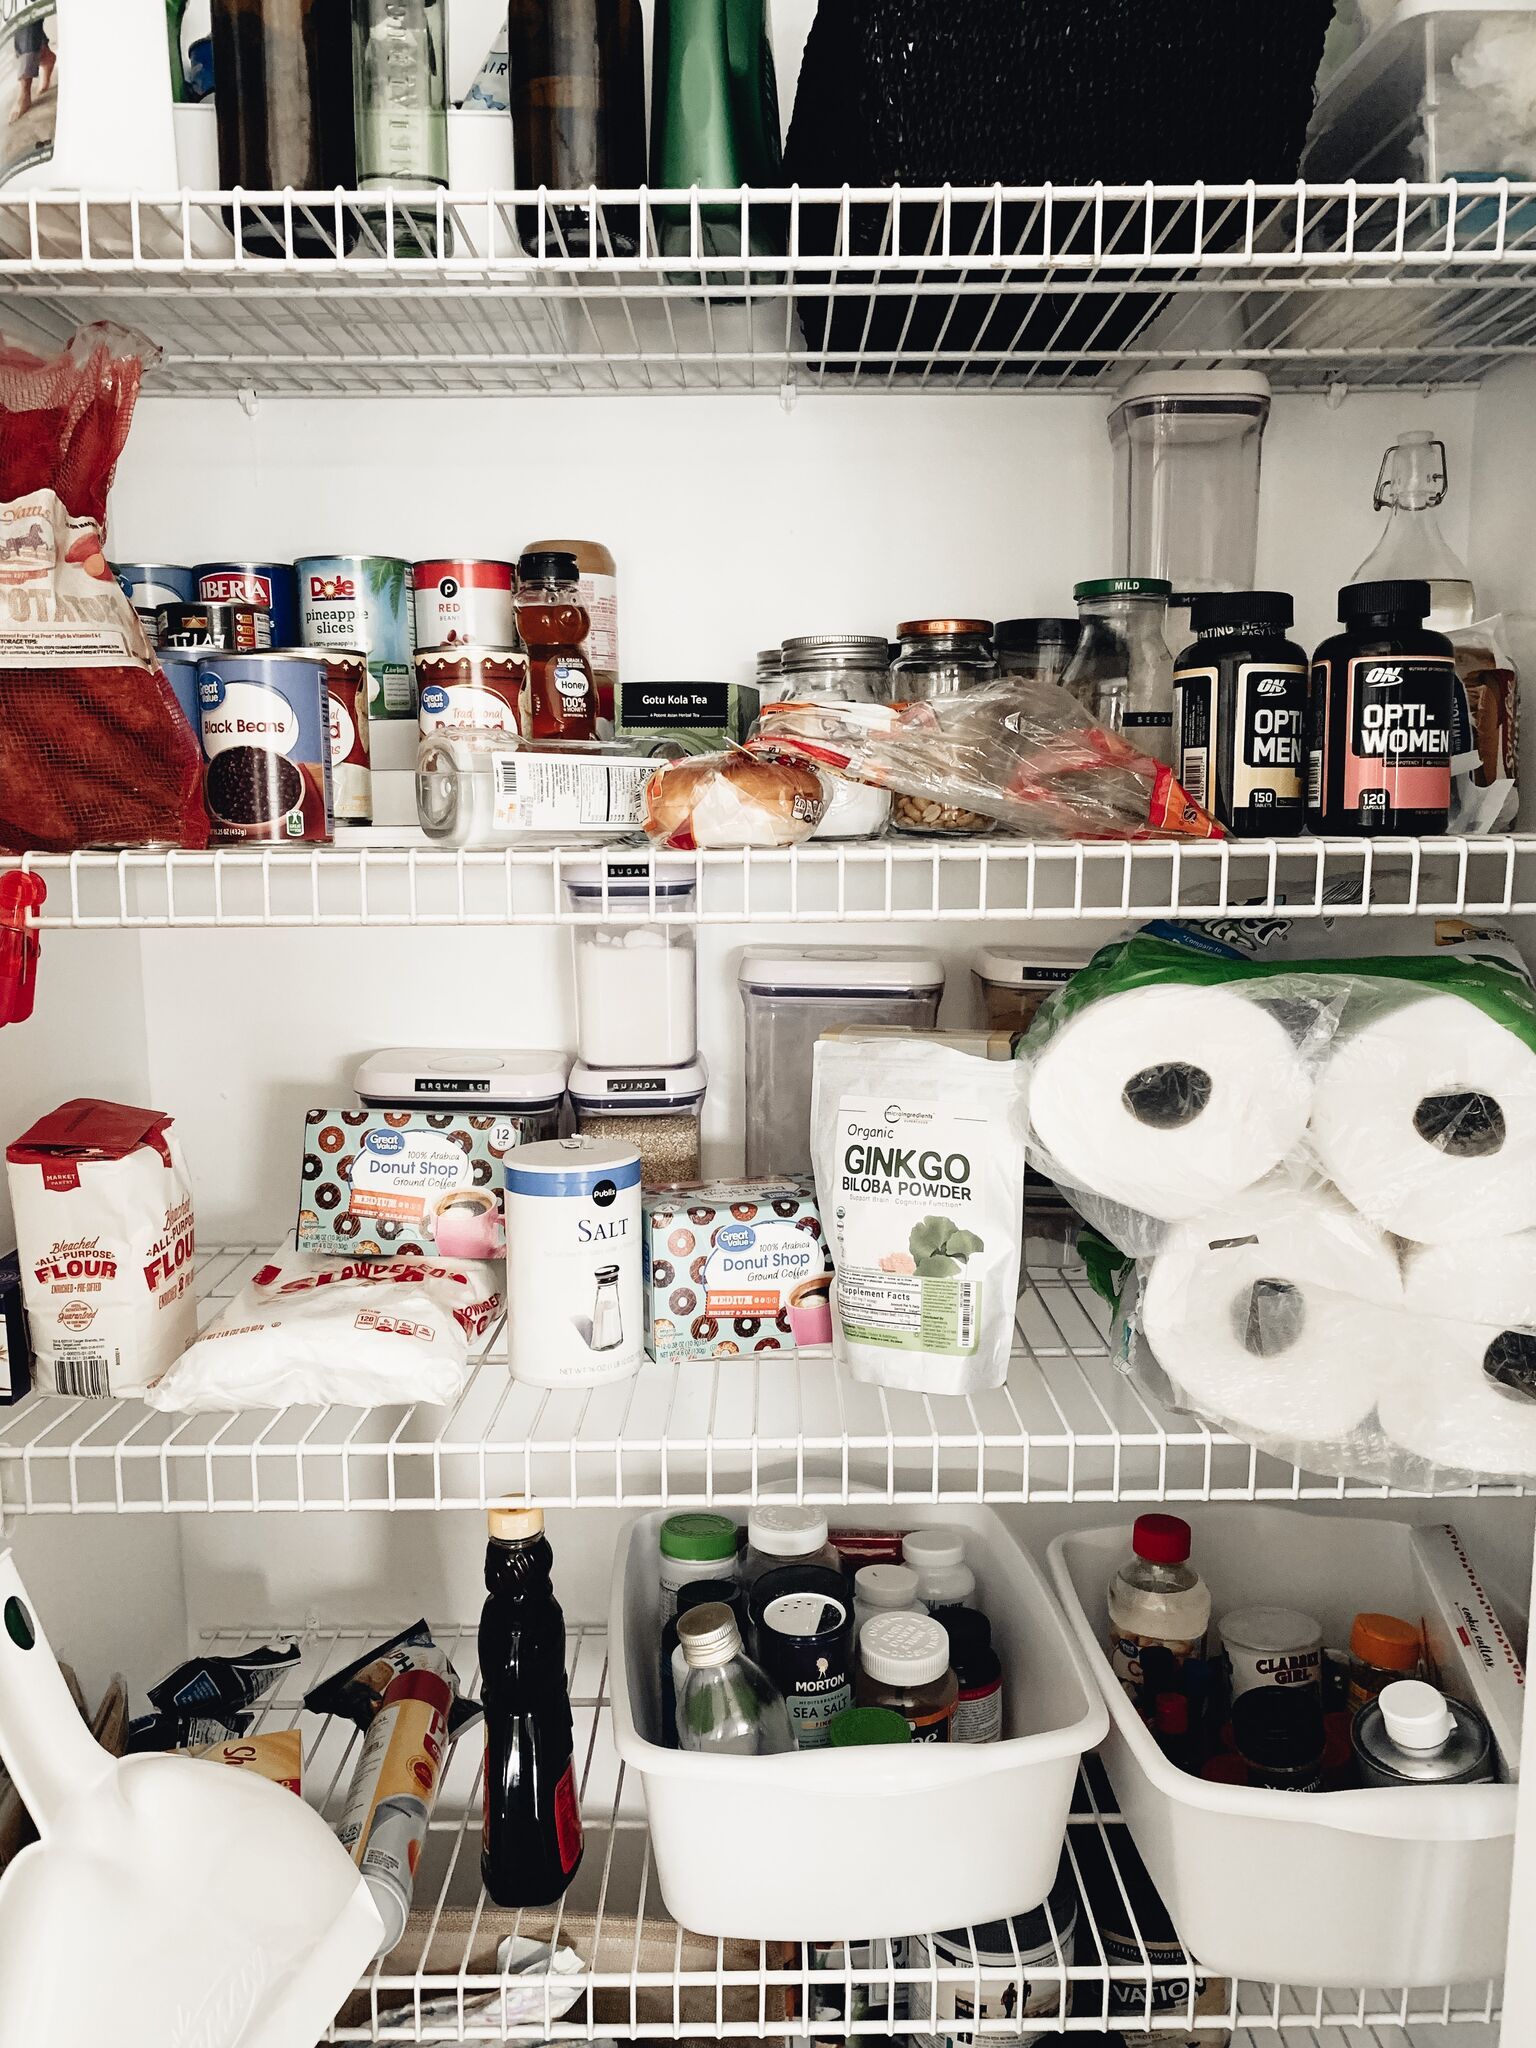 BEFORE + AFTER PANTRY OVERHAUL WITH THE CONTAINER STORE //5 steps to your dream pantry & fridge